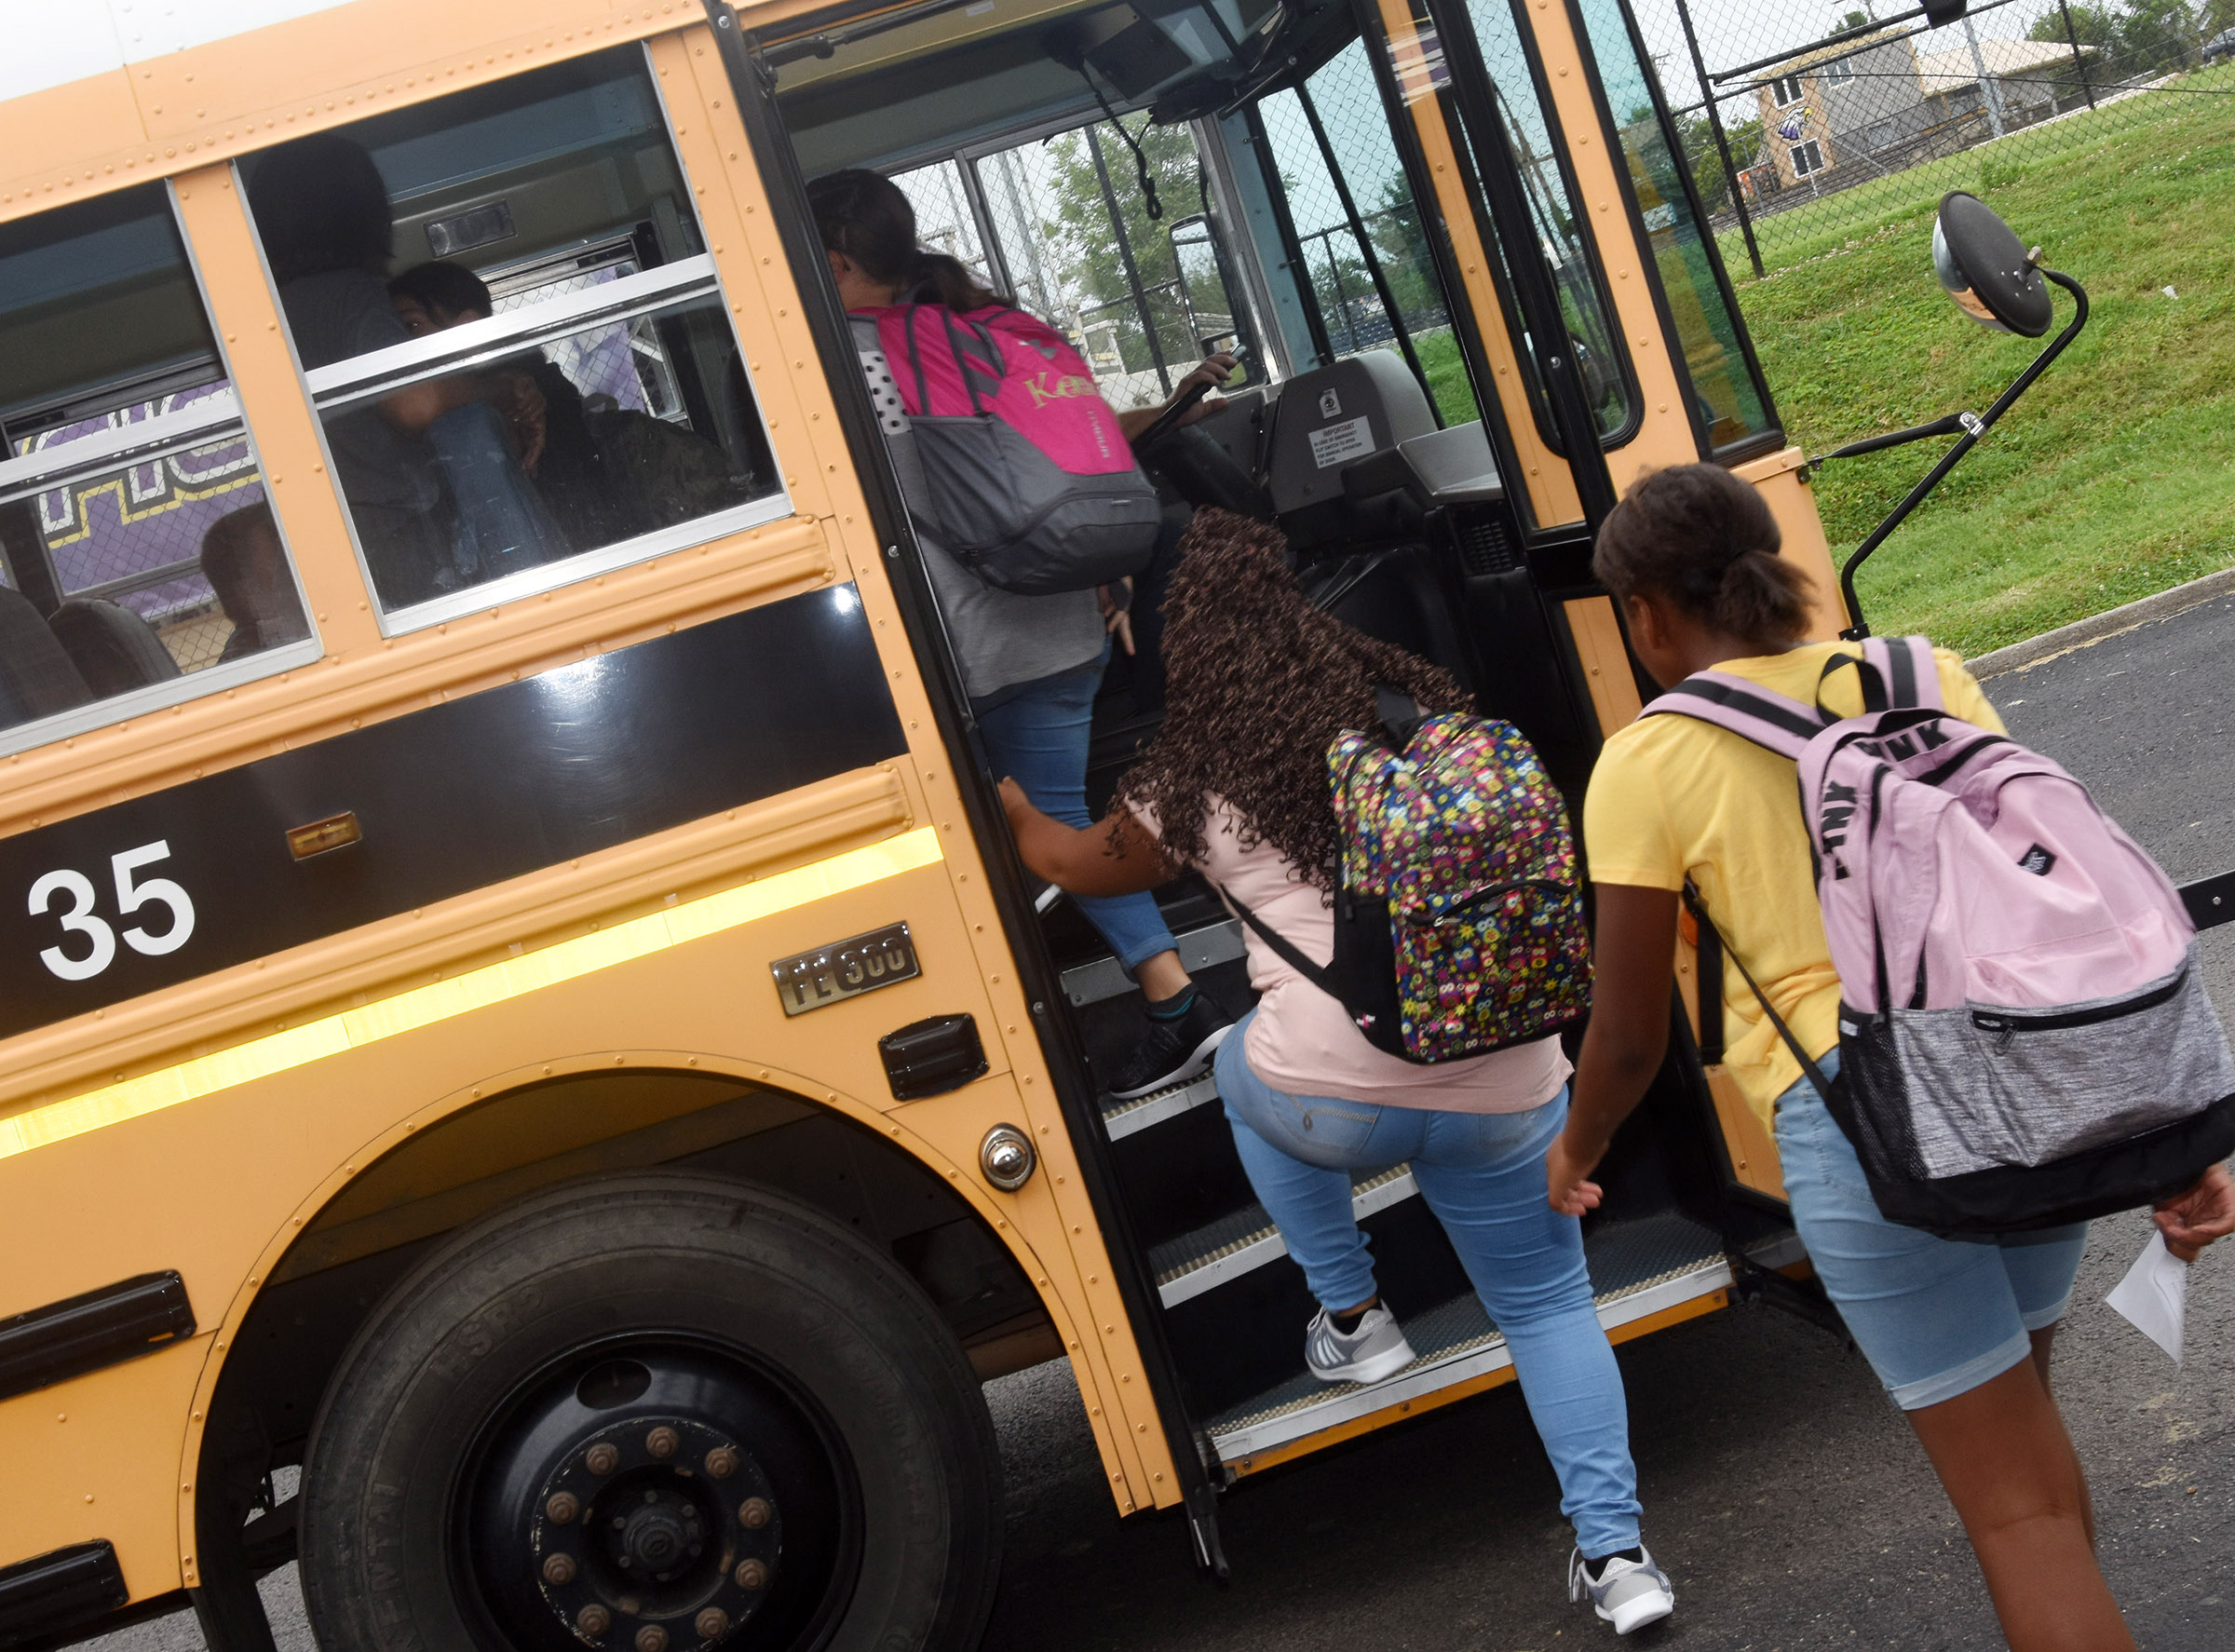 Campbellsville Middle School students catch the bus at the end of the day.